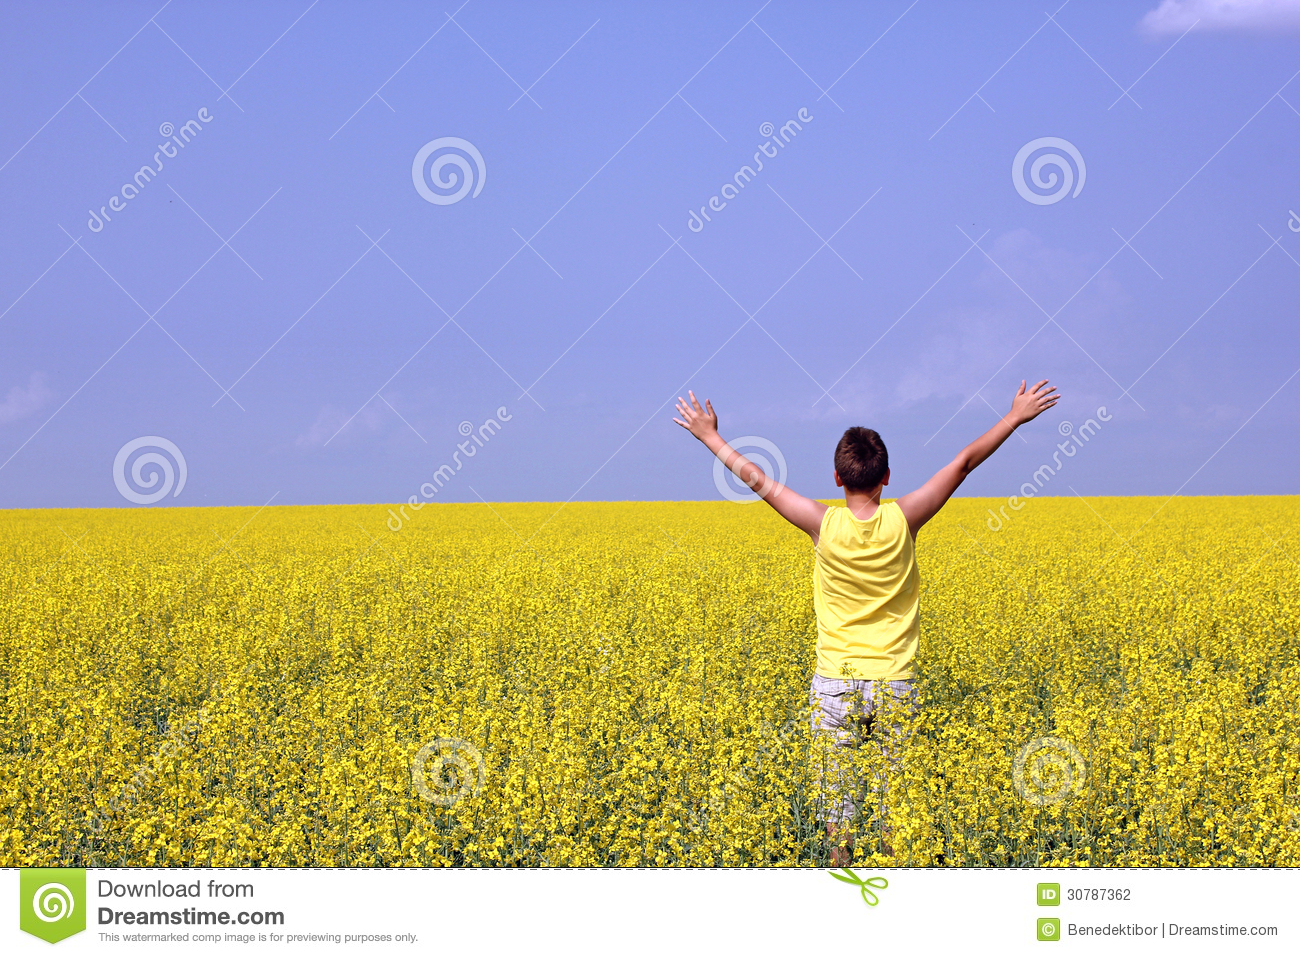 teenager in oilseed field - summer background